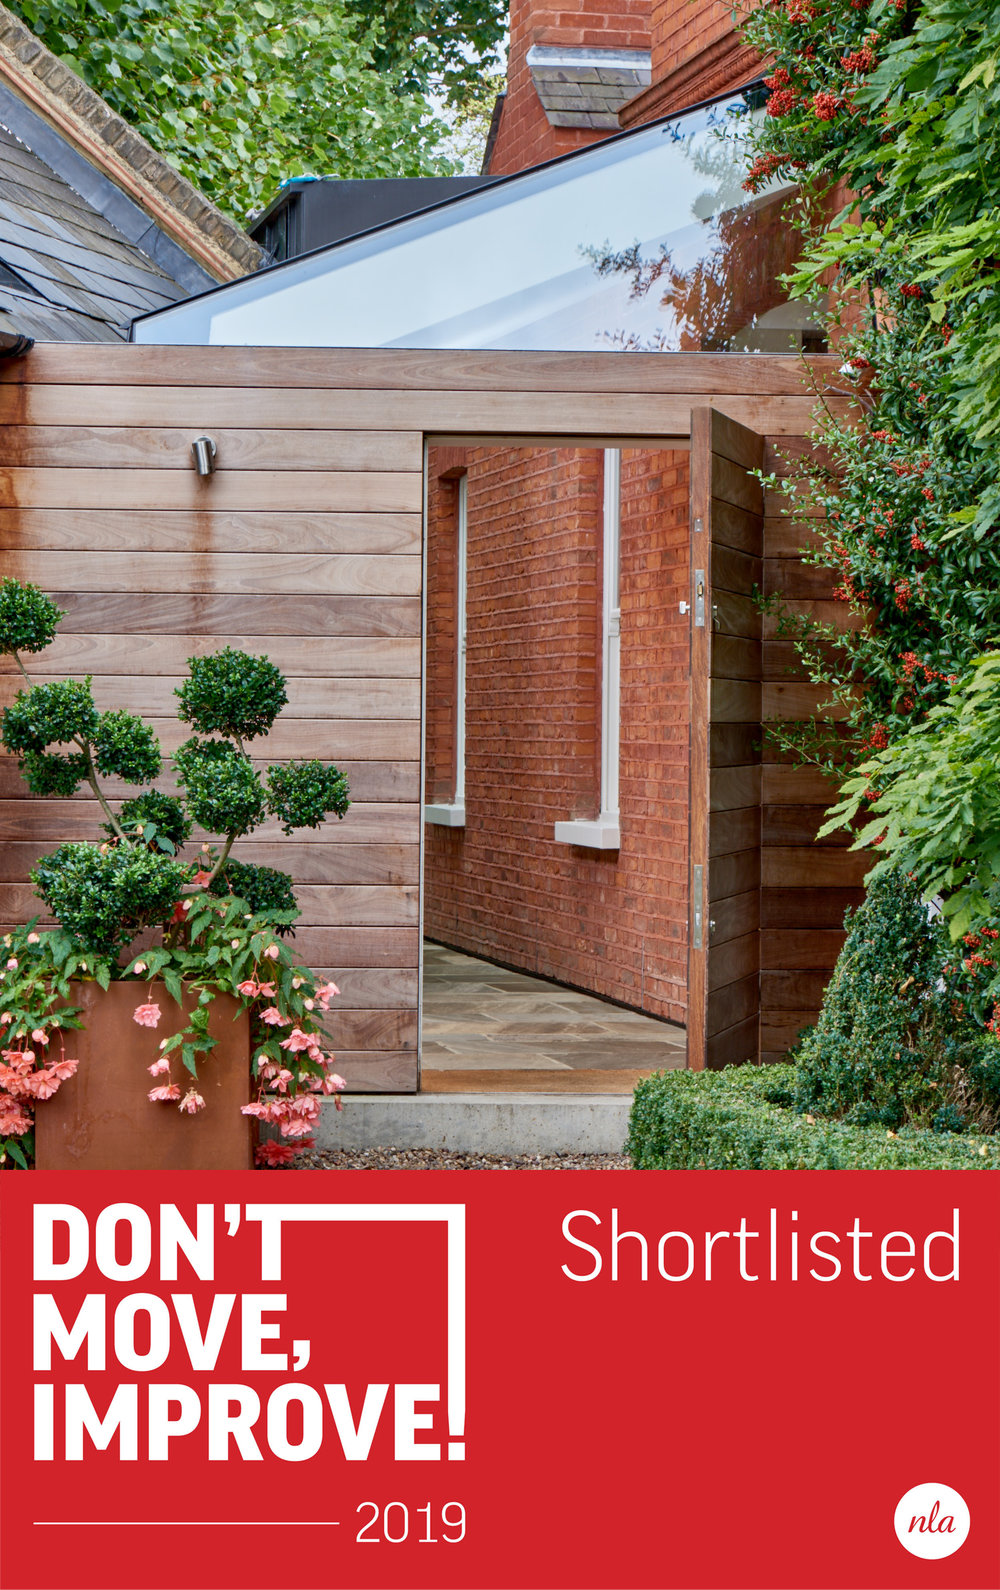 Don't Move Improve! 2019 - We're delighted to announce that our Link Building has been selected as one of London's best home improvements and was shortlisted for New London Architecture's Don't Move, Improve! Awards 2019. The Don't Move Improve Exhibition is now open and free to visit. Head over to Building Centre for inspirations for your new home project! New London Architecture The Building Centre, 26 Store Street, London WC1E 7BT.Free downloadable magazine available on New London Architecture website.